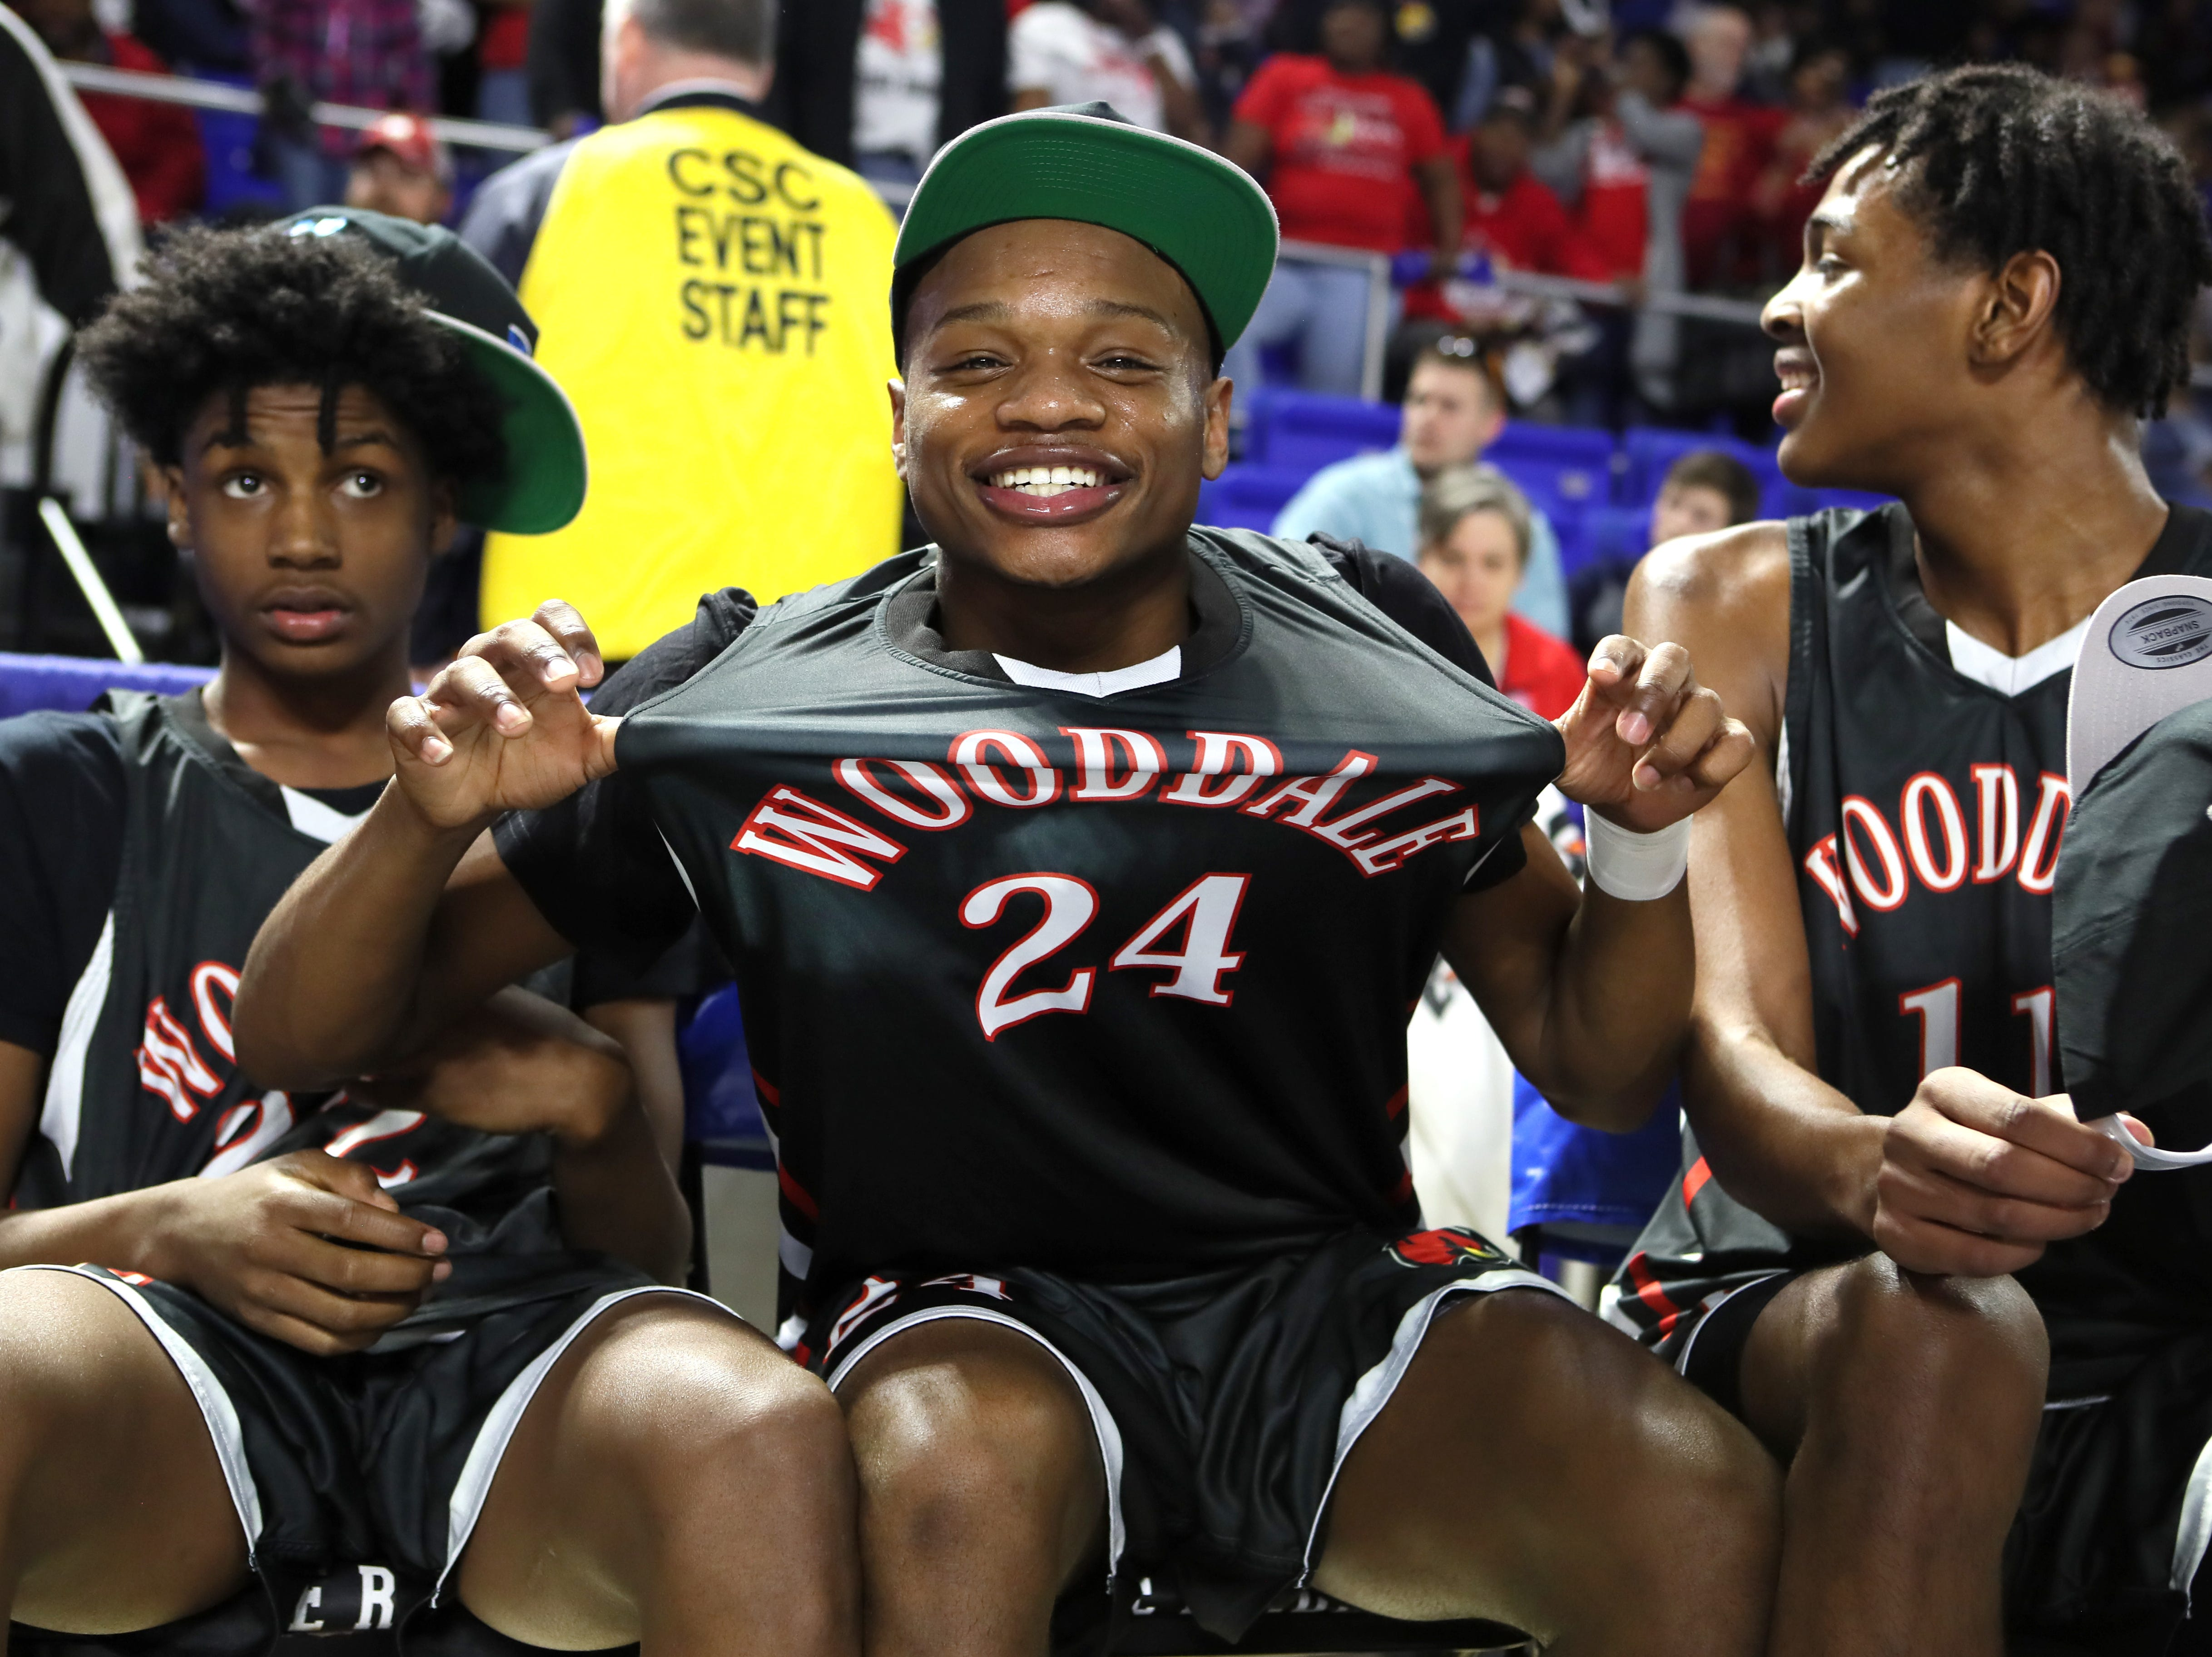 Wooddale's Tekevion Rounds celebrates their Class AA boys basketball state championship win over Fulton at the Murphy Center in Murfreesboro, Tenn. on Saturday, March 16, 2019.